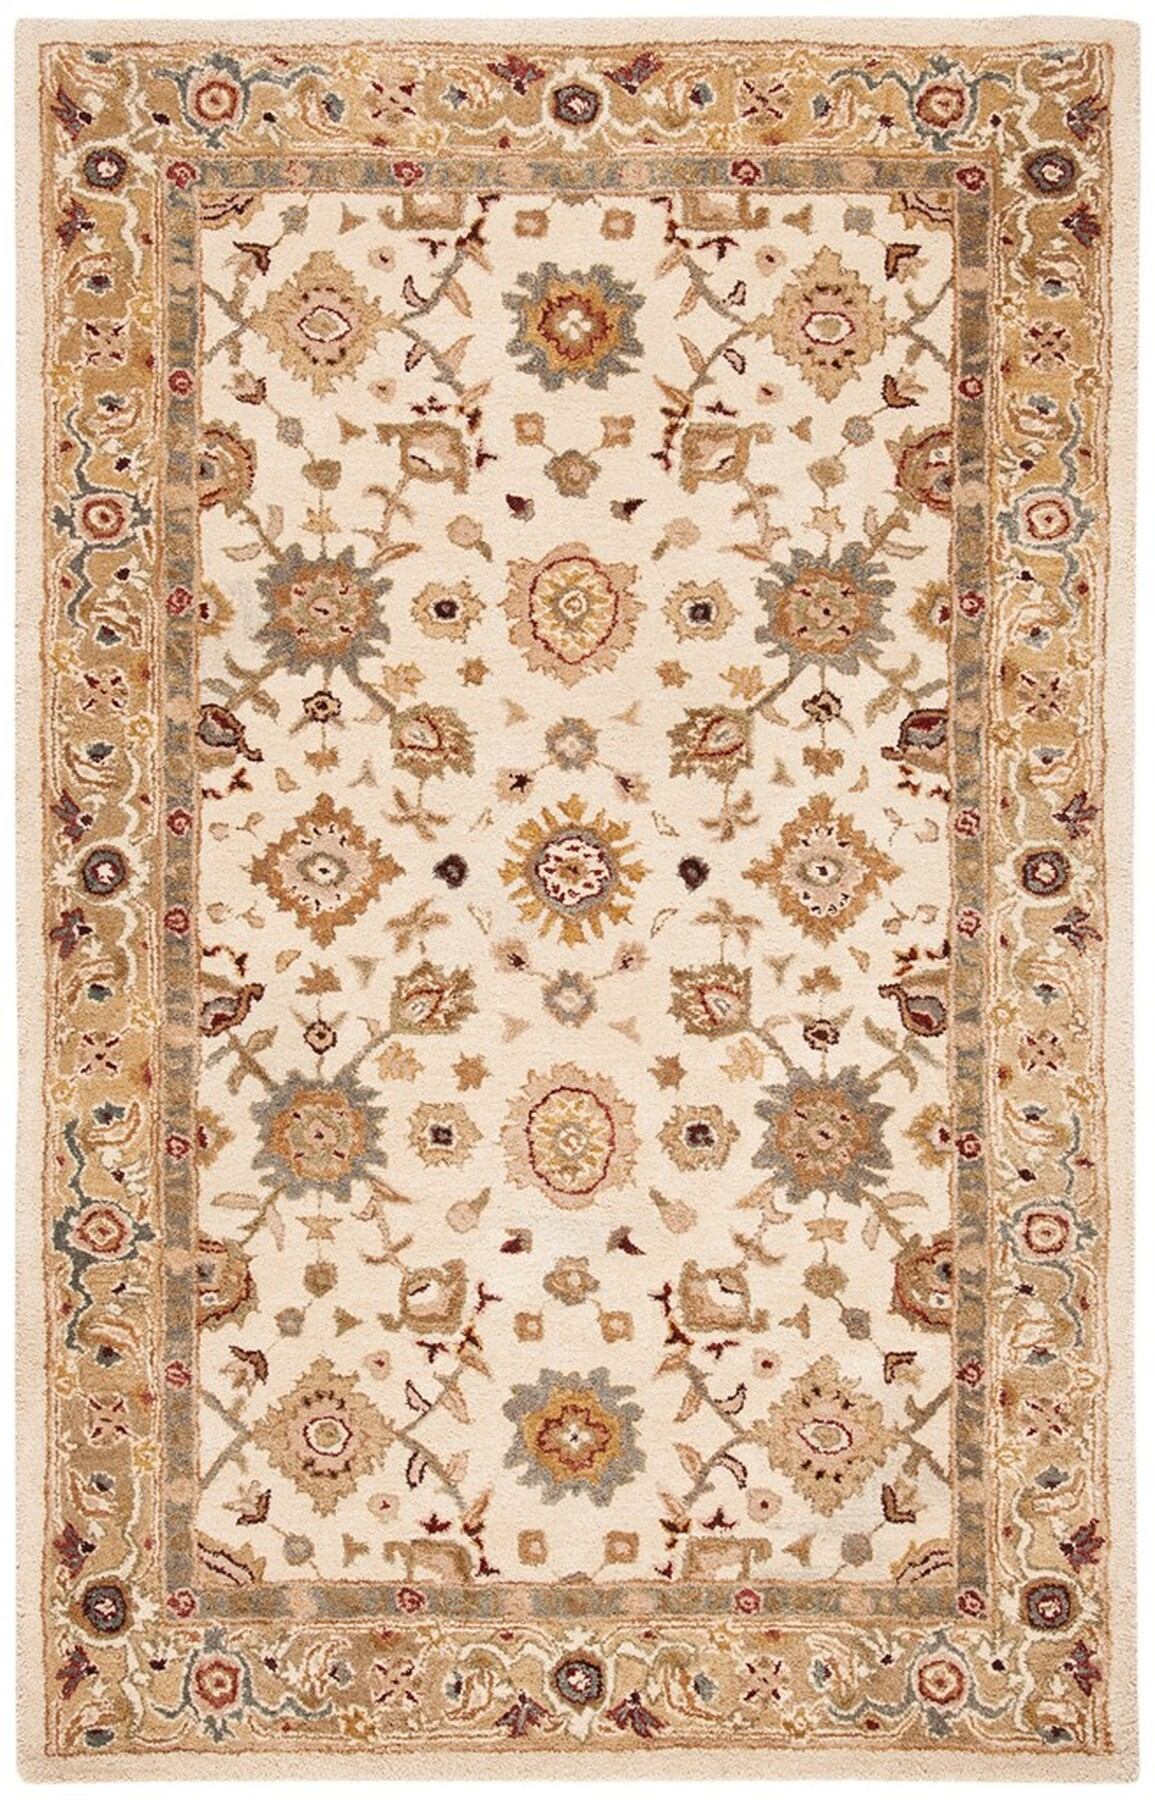 Rug An546b Anatolia Area Rugs By Safavieh